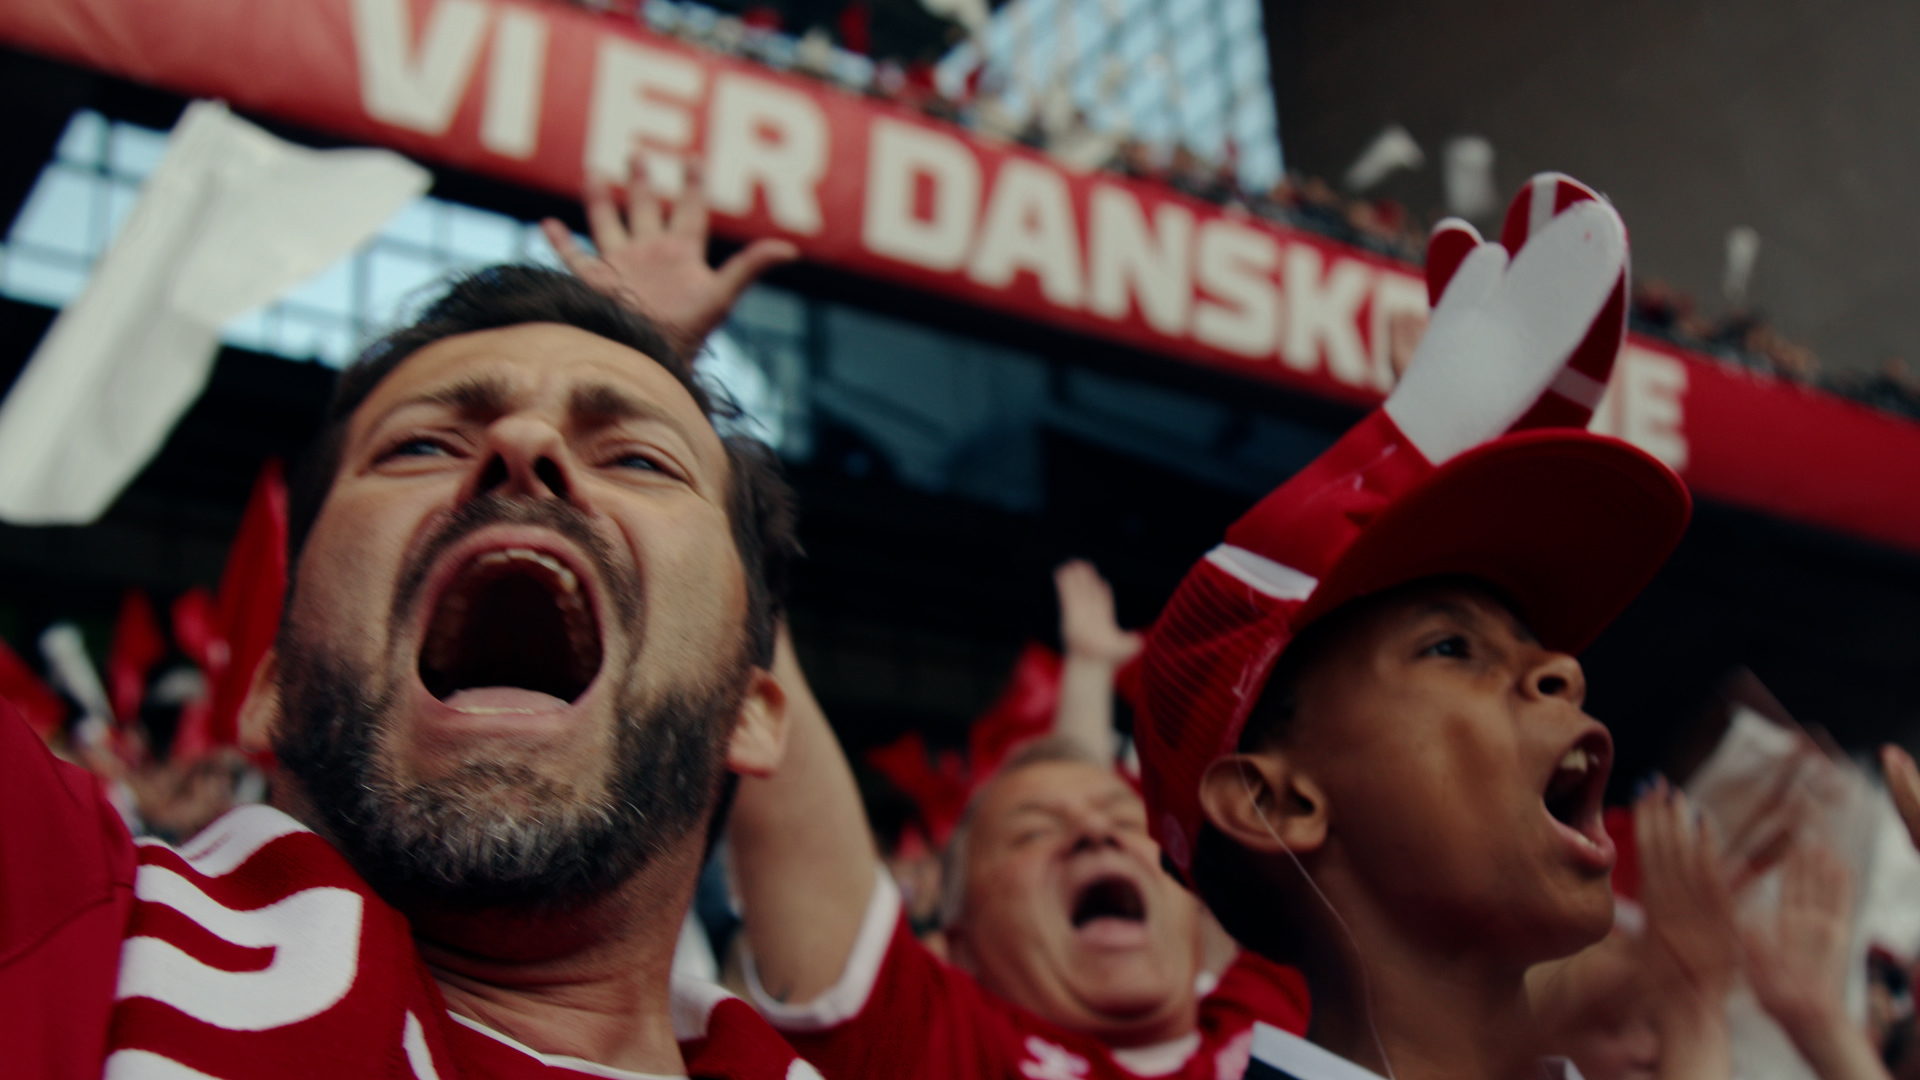 Remember the sound? The sound of a stadium filled with fans? The sound of fans singing the Danish national song -